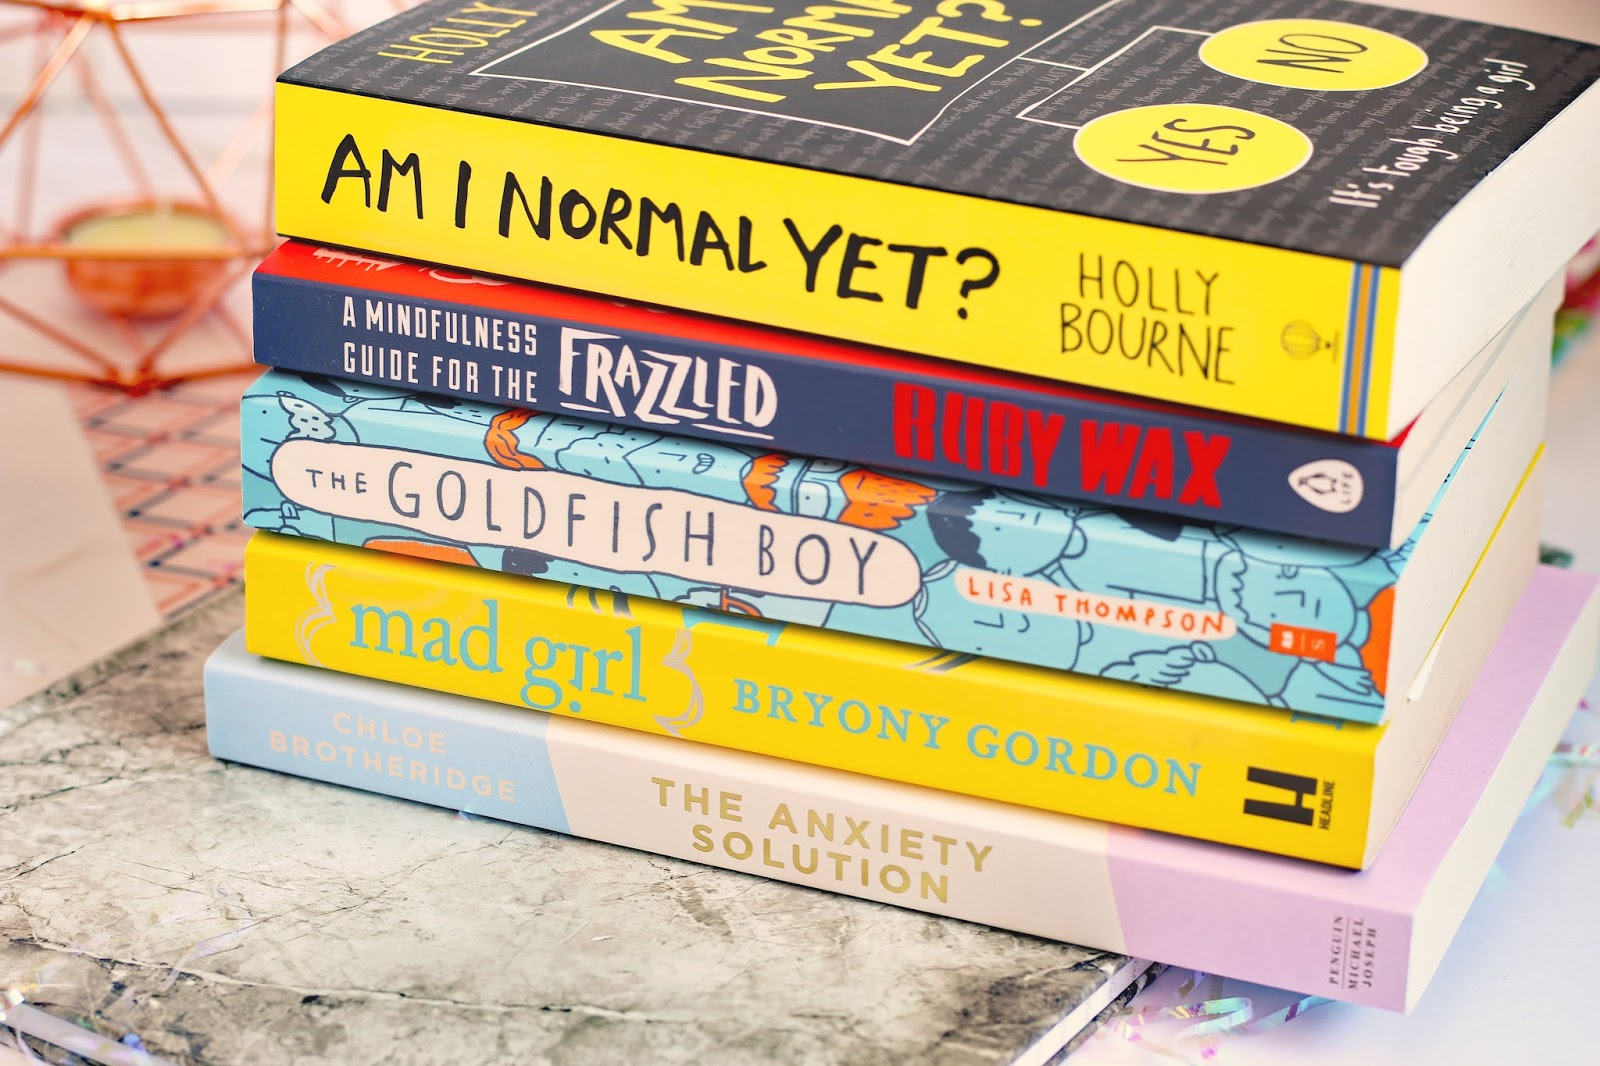 My Top Five Mental Health Books anxiety self help OCD depression mental illness wellbeing help support blogger UK  WHsmiths Waterstones Amazon